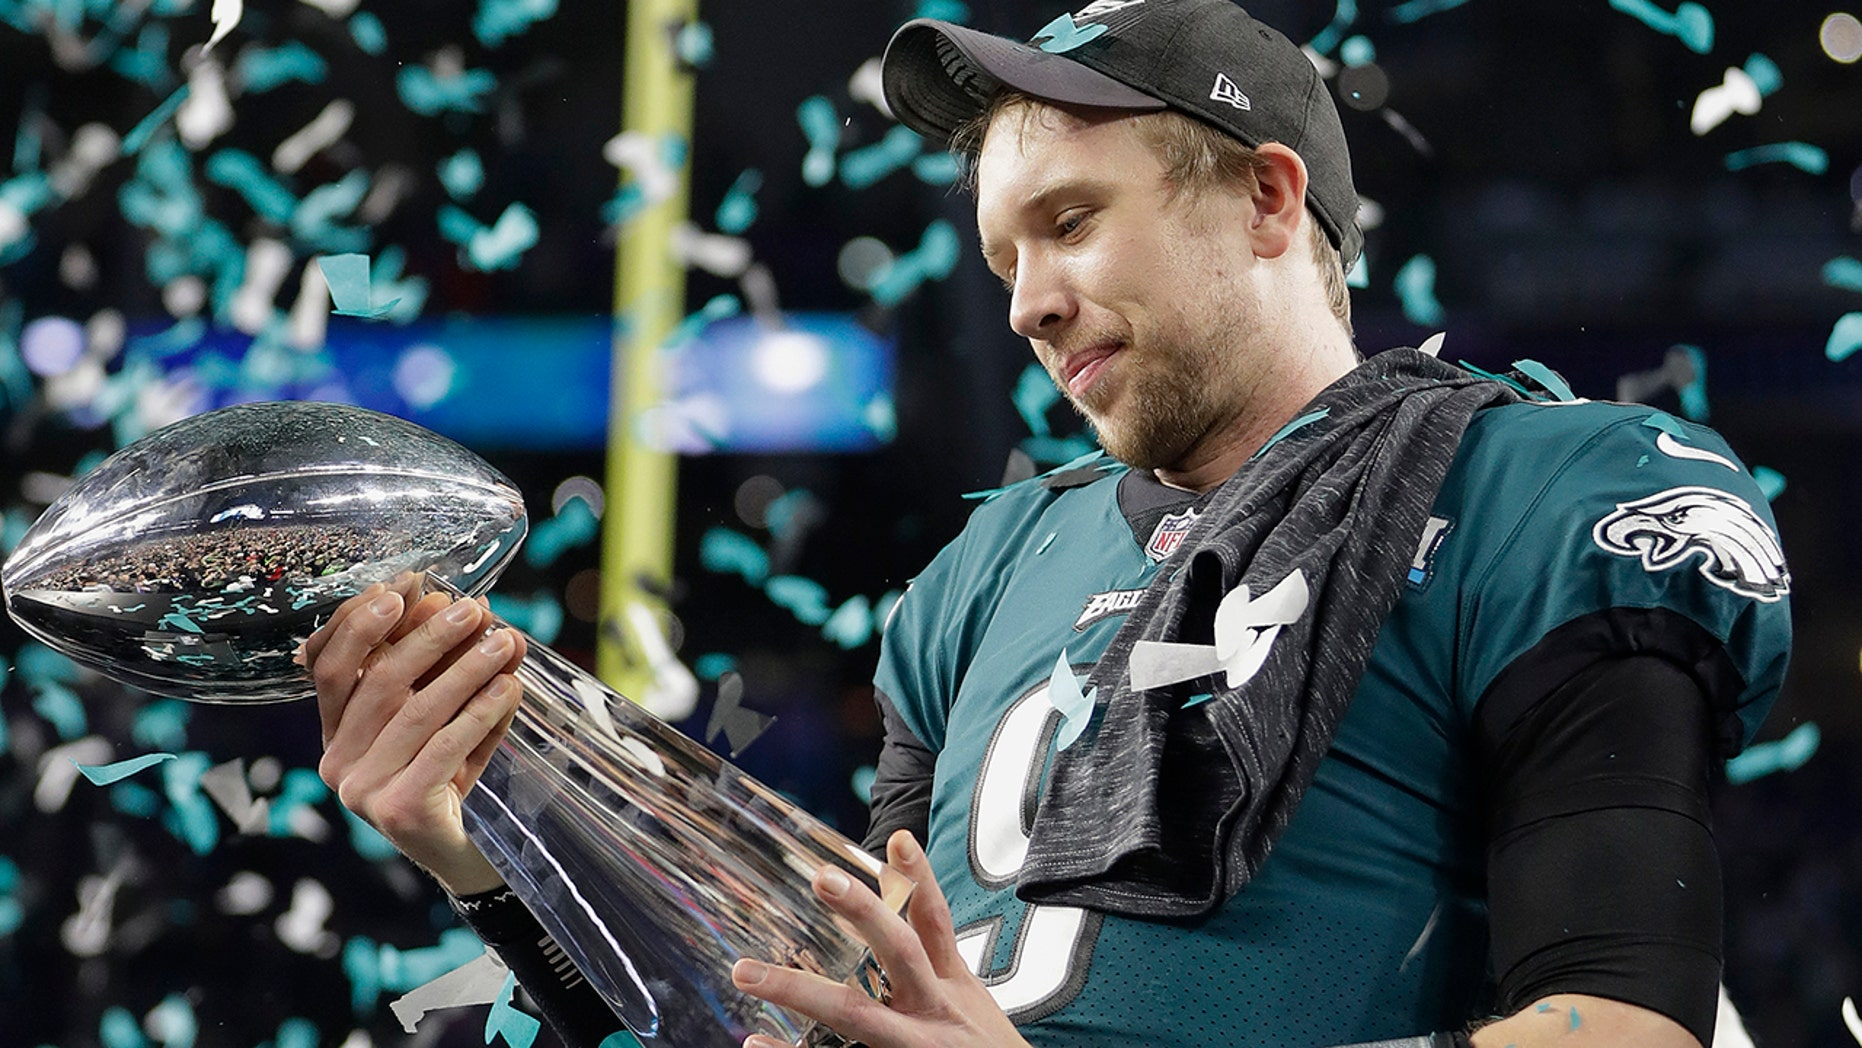 Philadelphia Eagles' Nick Foles holds up the Vince Lombardi Trophy after the NFL Super Bowl 52 football game against the New England Patriots, Sunday, Feb. 4, 2018, in Minneapolis. The Eagles won 41-33. (AP Photo/Mark Humphrey)